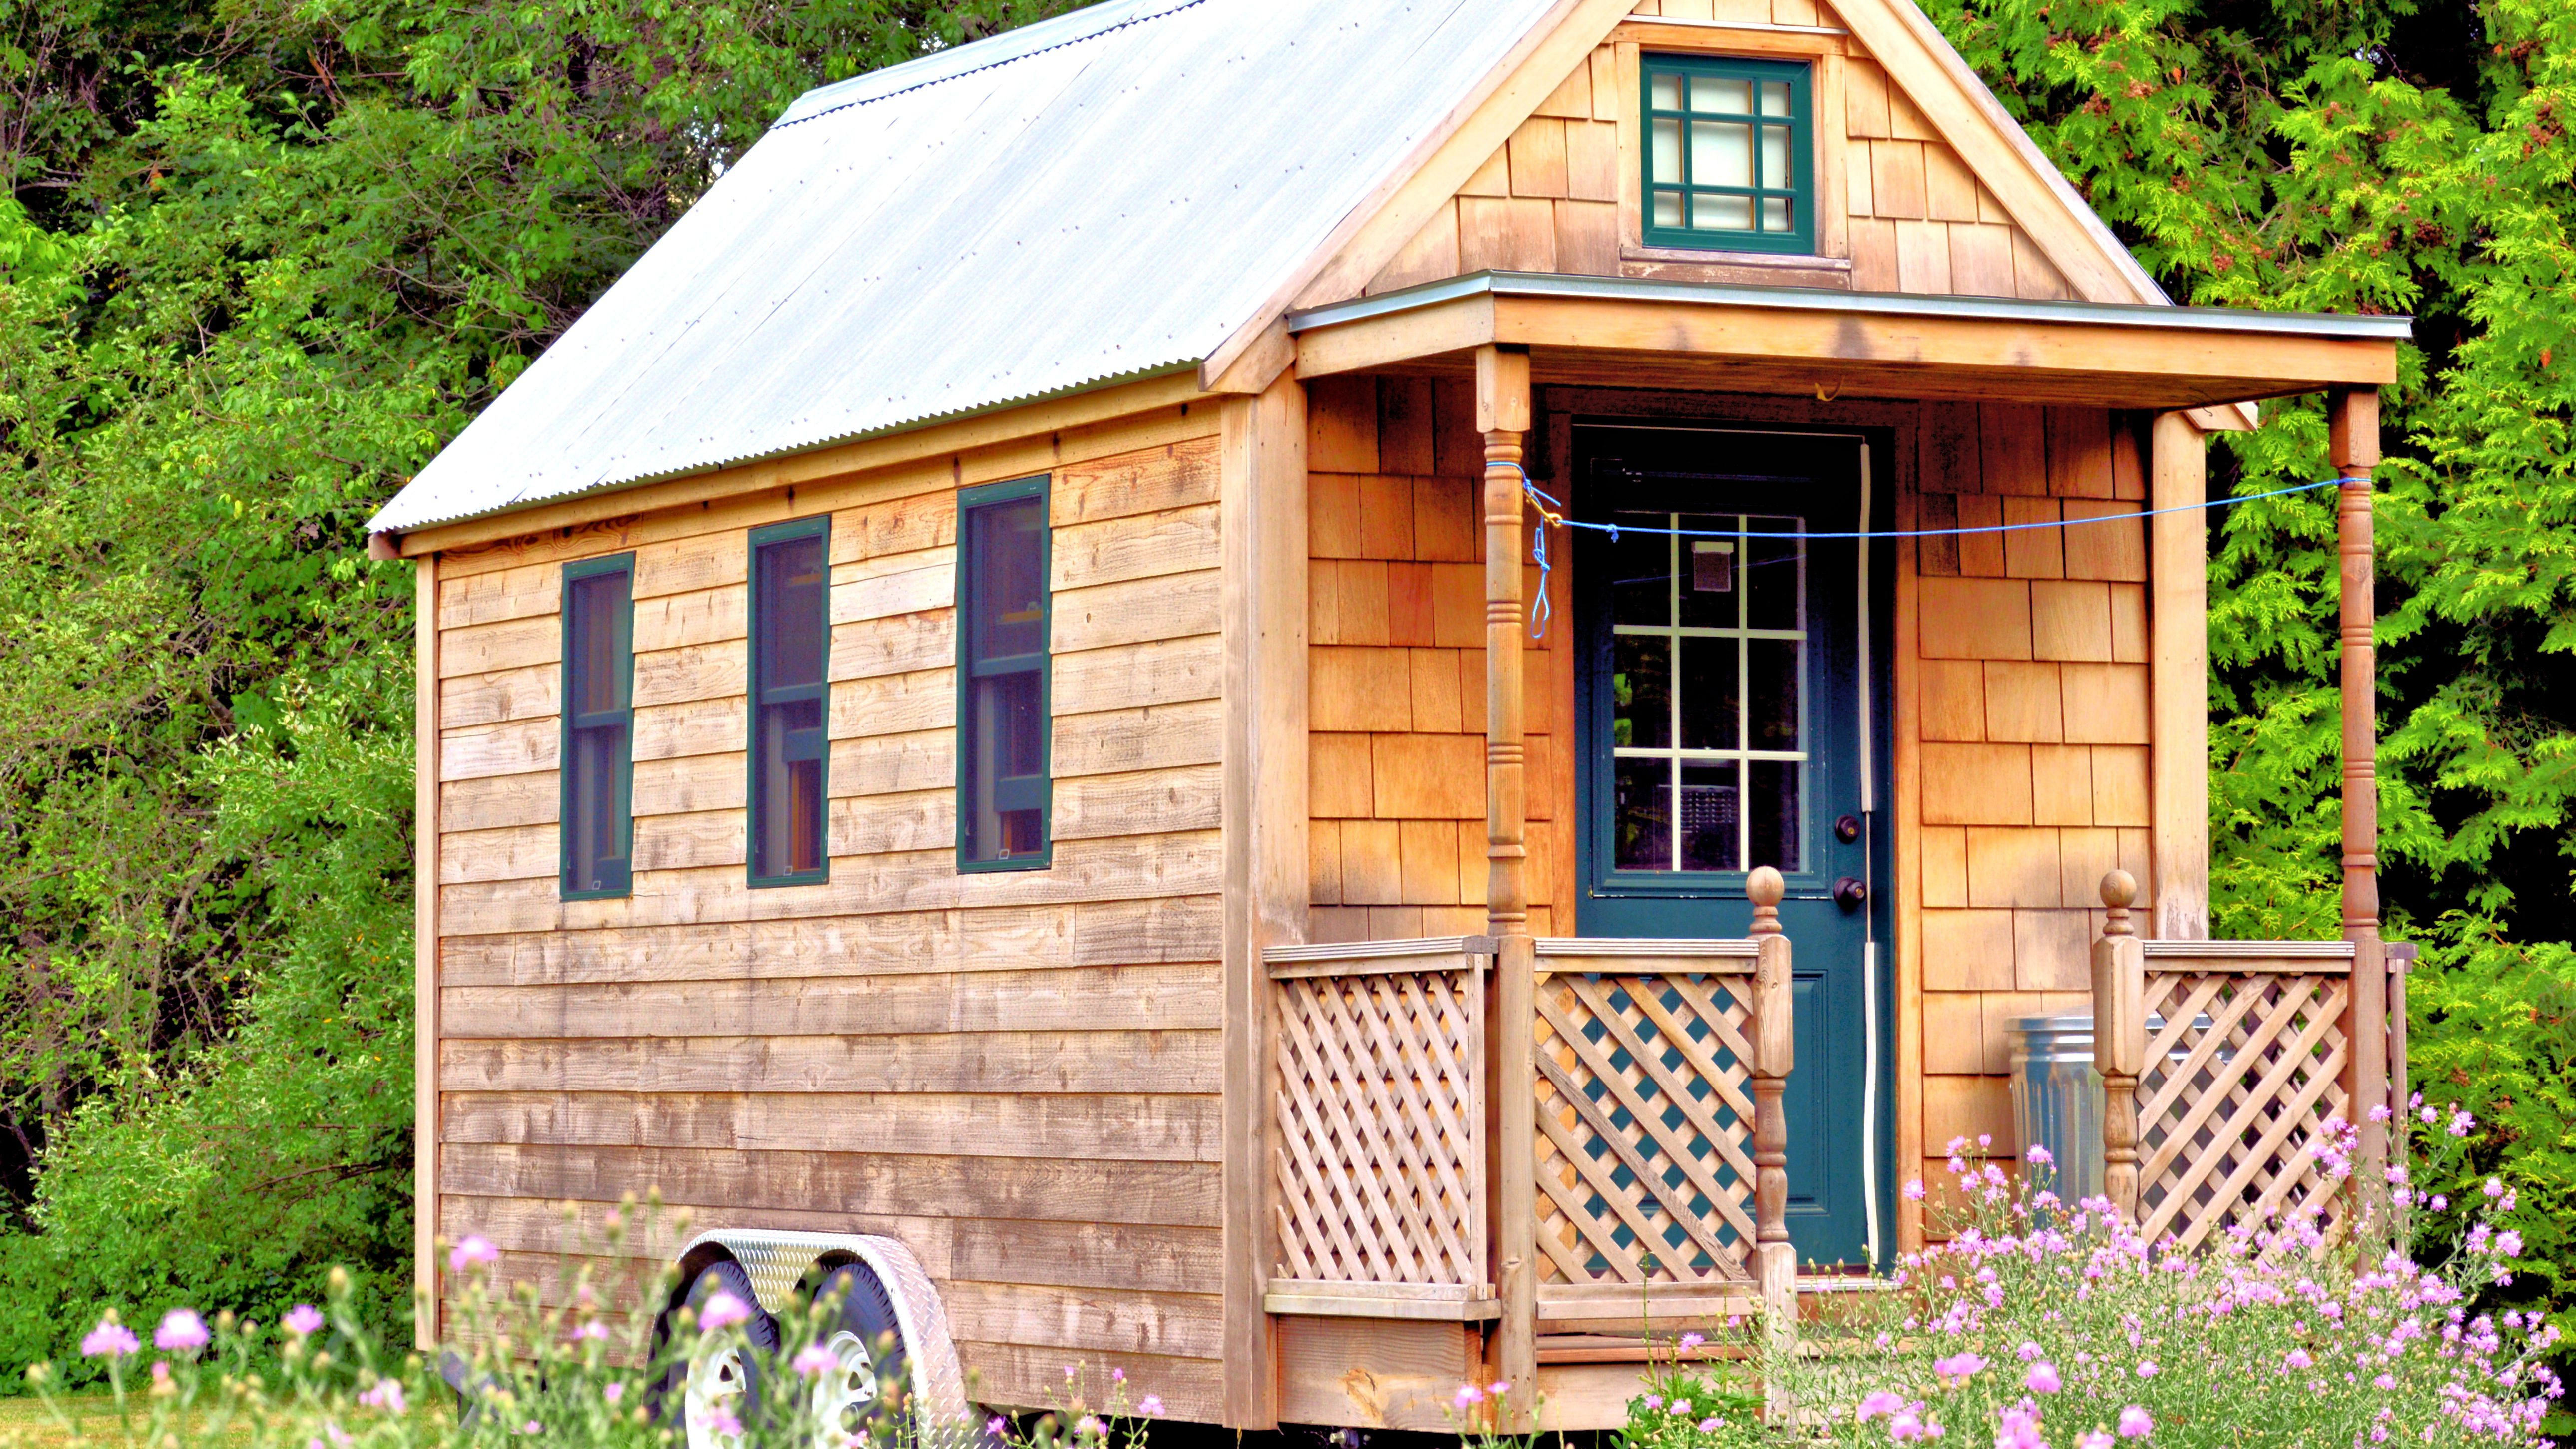 Does Hud Want To Make Tiny Houses Illegal They Already Pretty Much Are